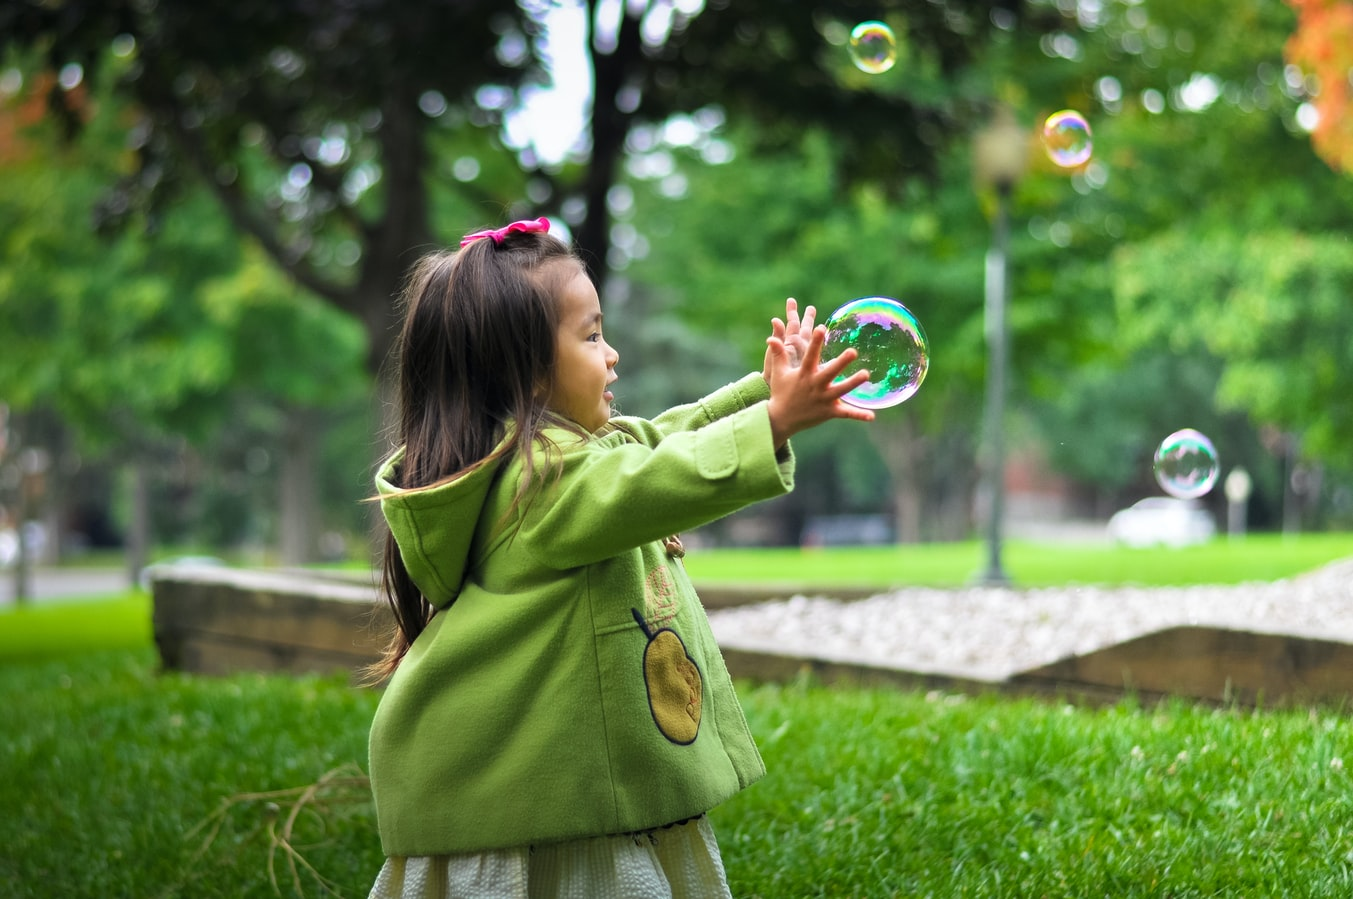 A young girl playing outside with bubbles. There are many children who experience adverse childhood experiences